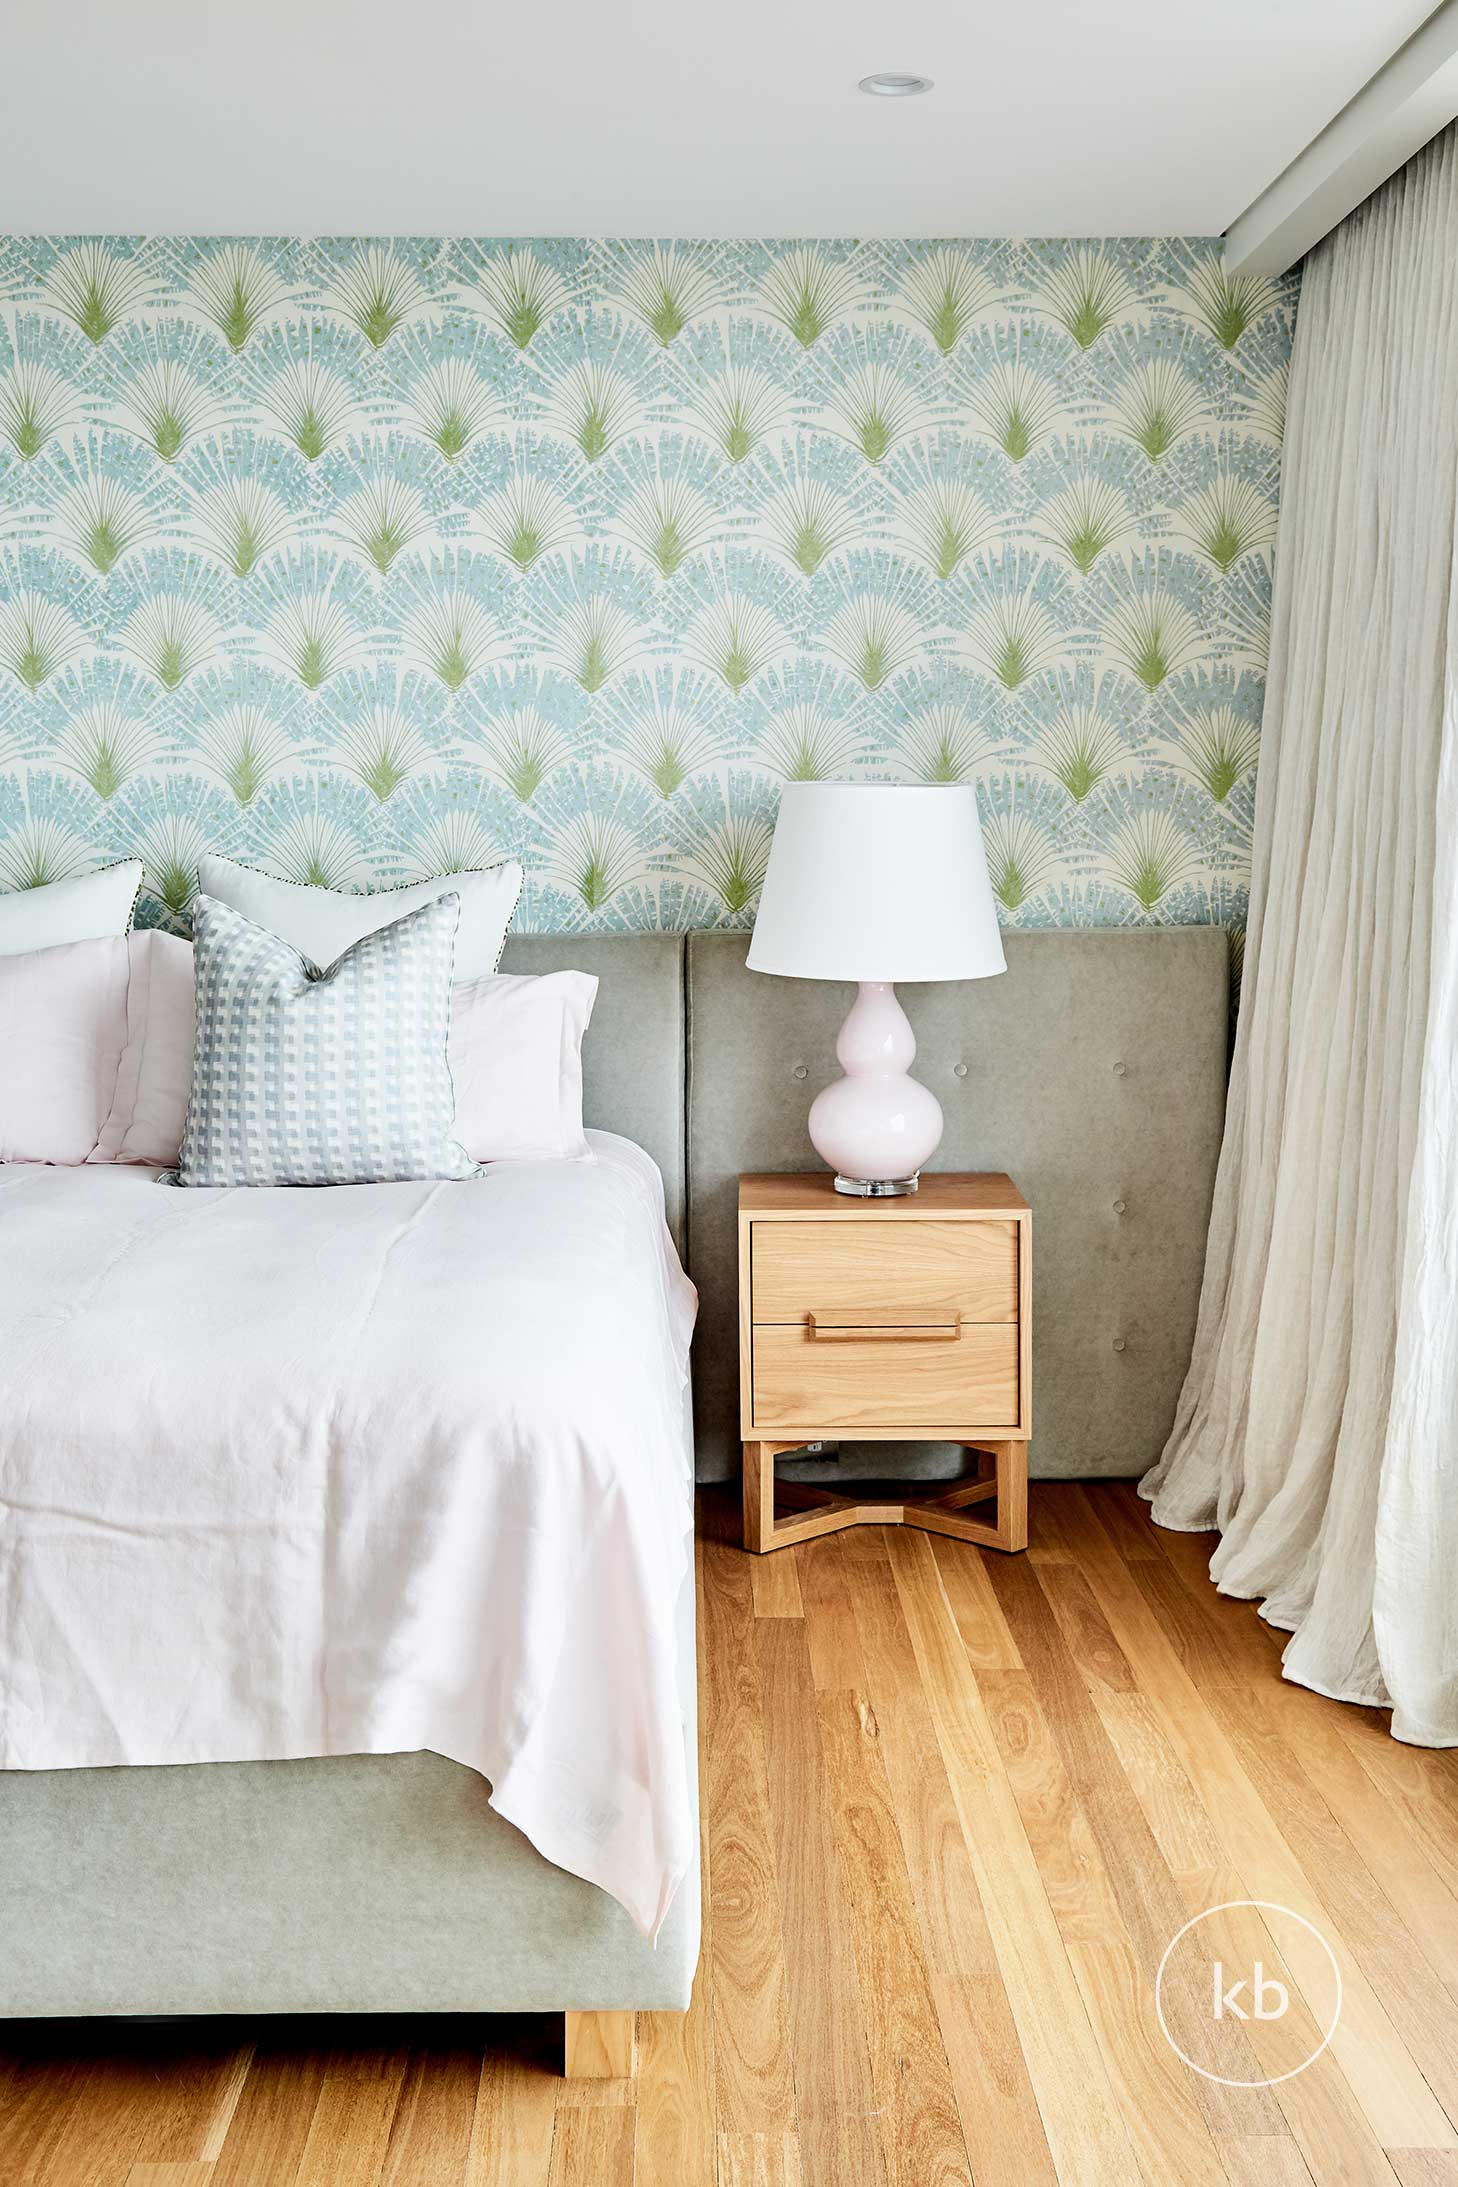 ©-Kate-Bell-Interior-Architecture-&-Design-07-Rockwell-Project-Bedroom-01.jpg